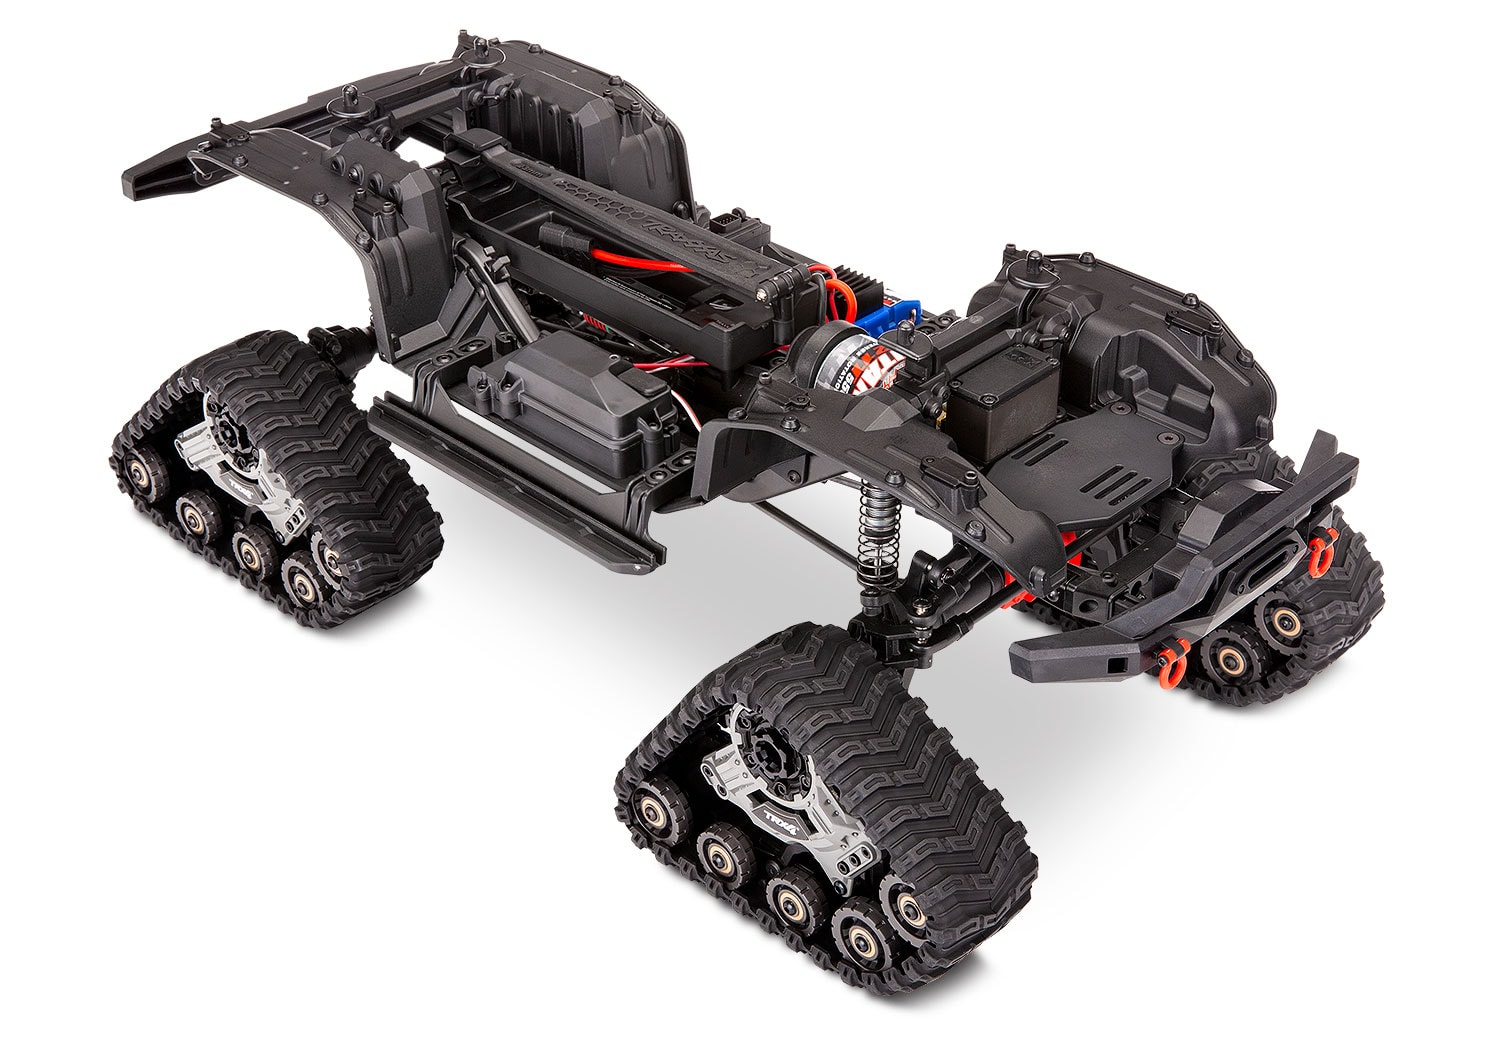 Traxxas TRX-4 Traxx RTR - Chassis